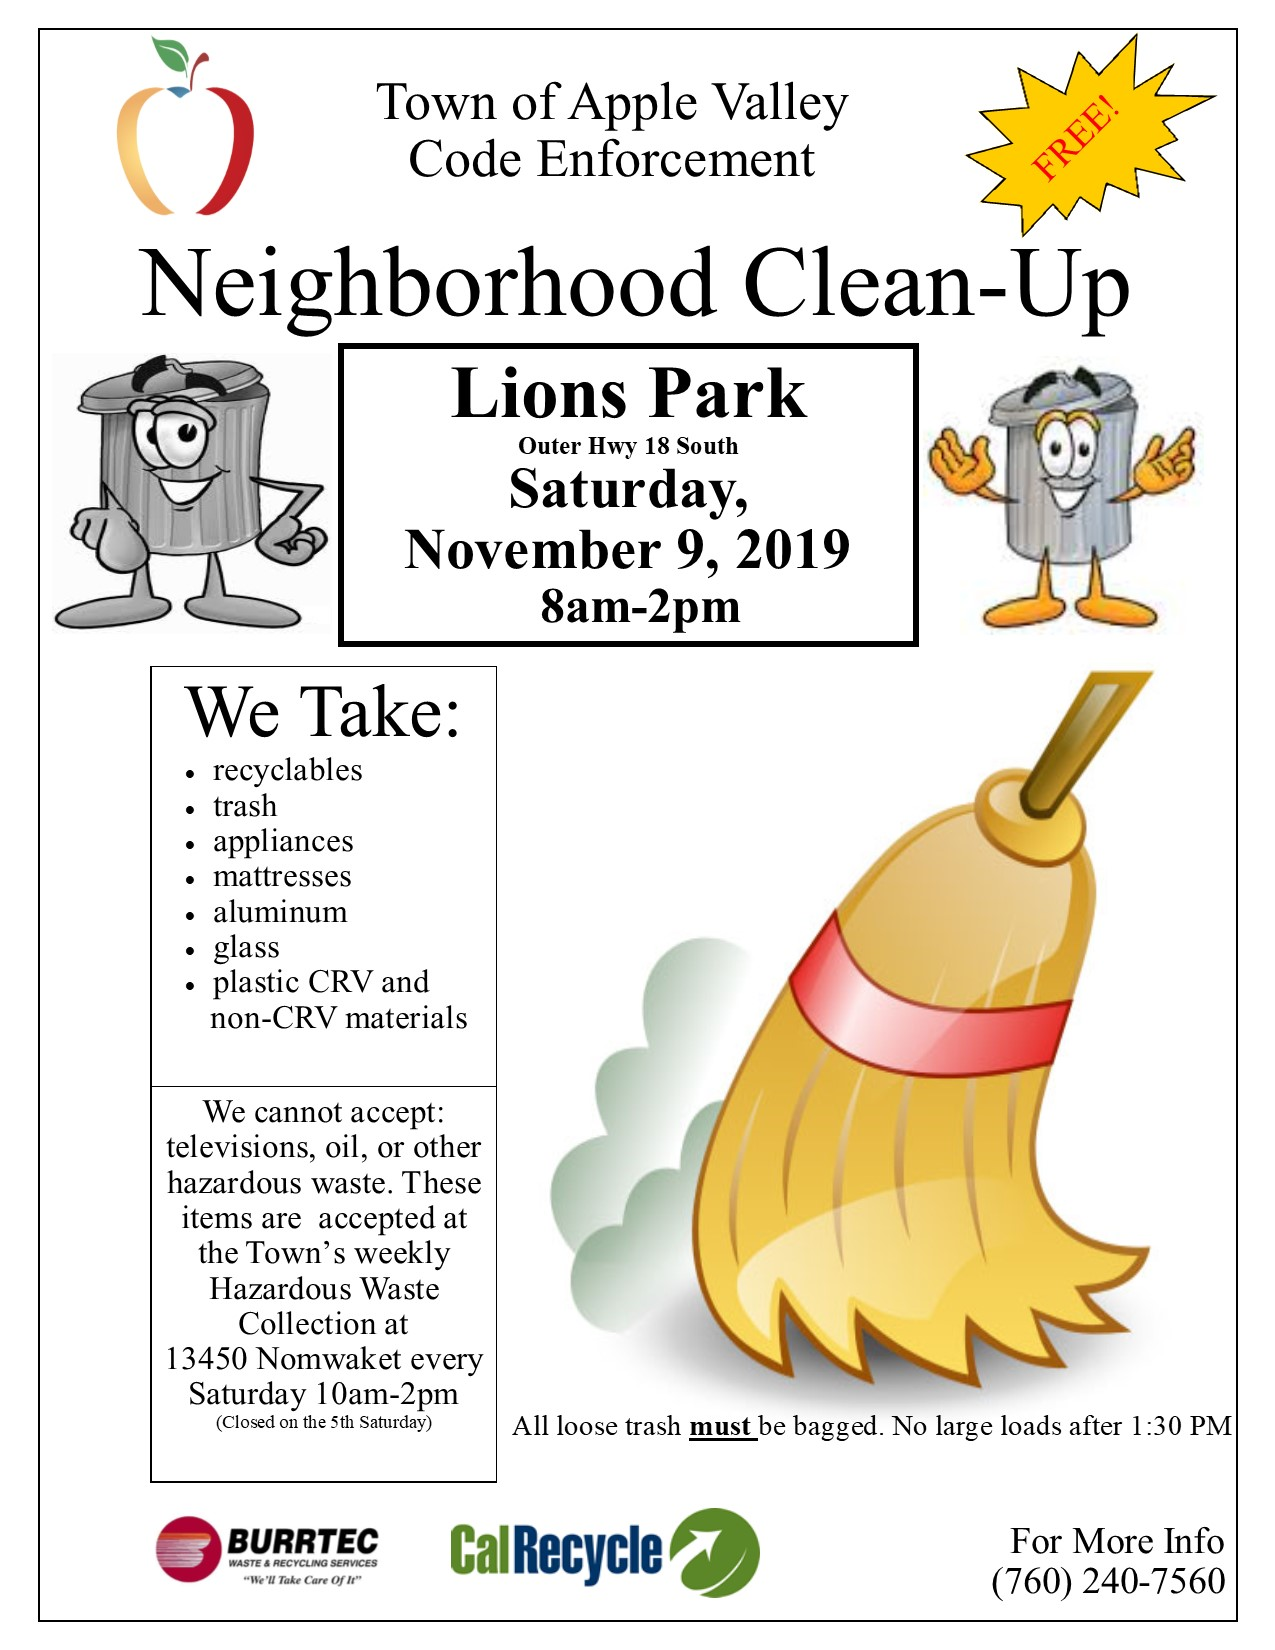 Neighborhood Clean-up November 9, 2019